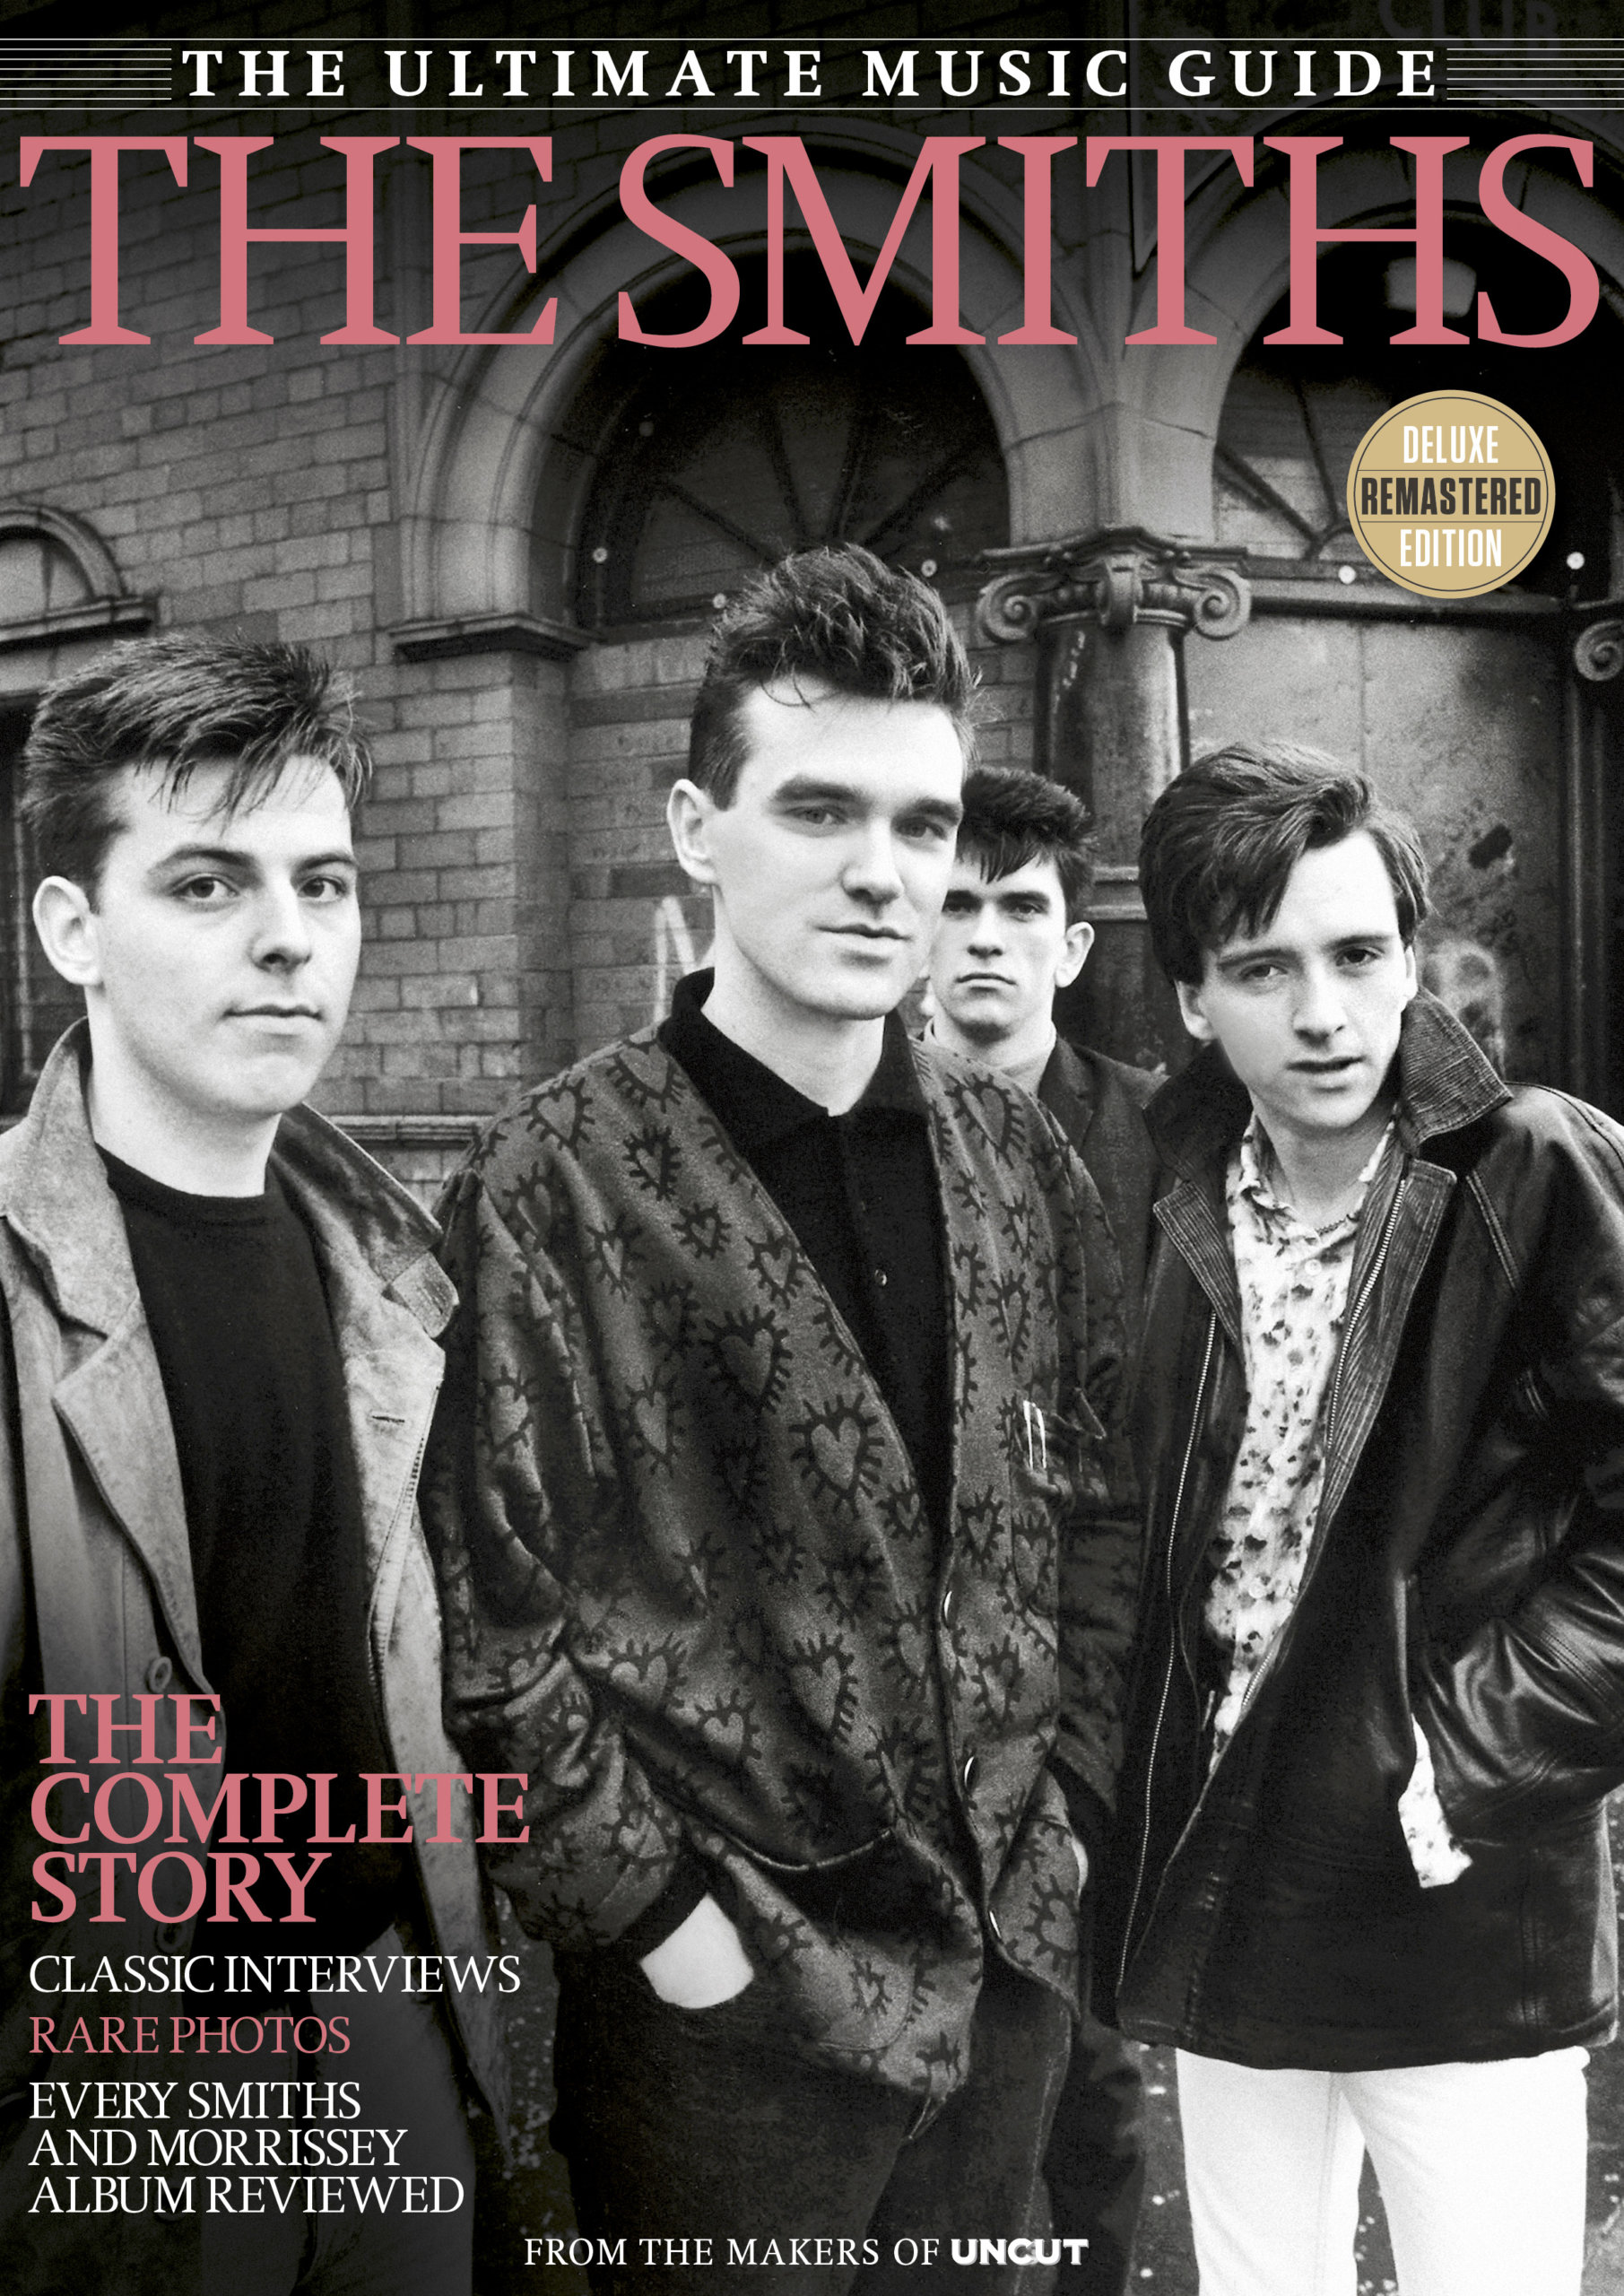 Deluxe Ultimate Music Guide: The Smiths